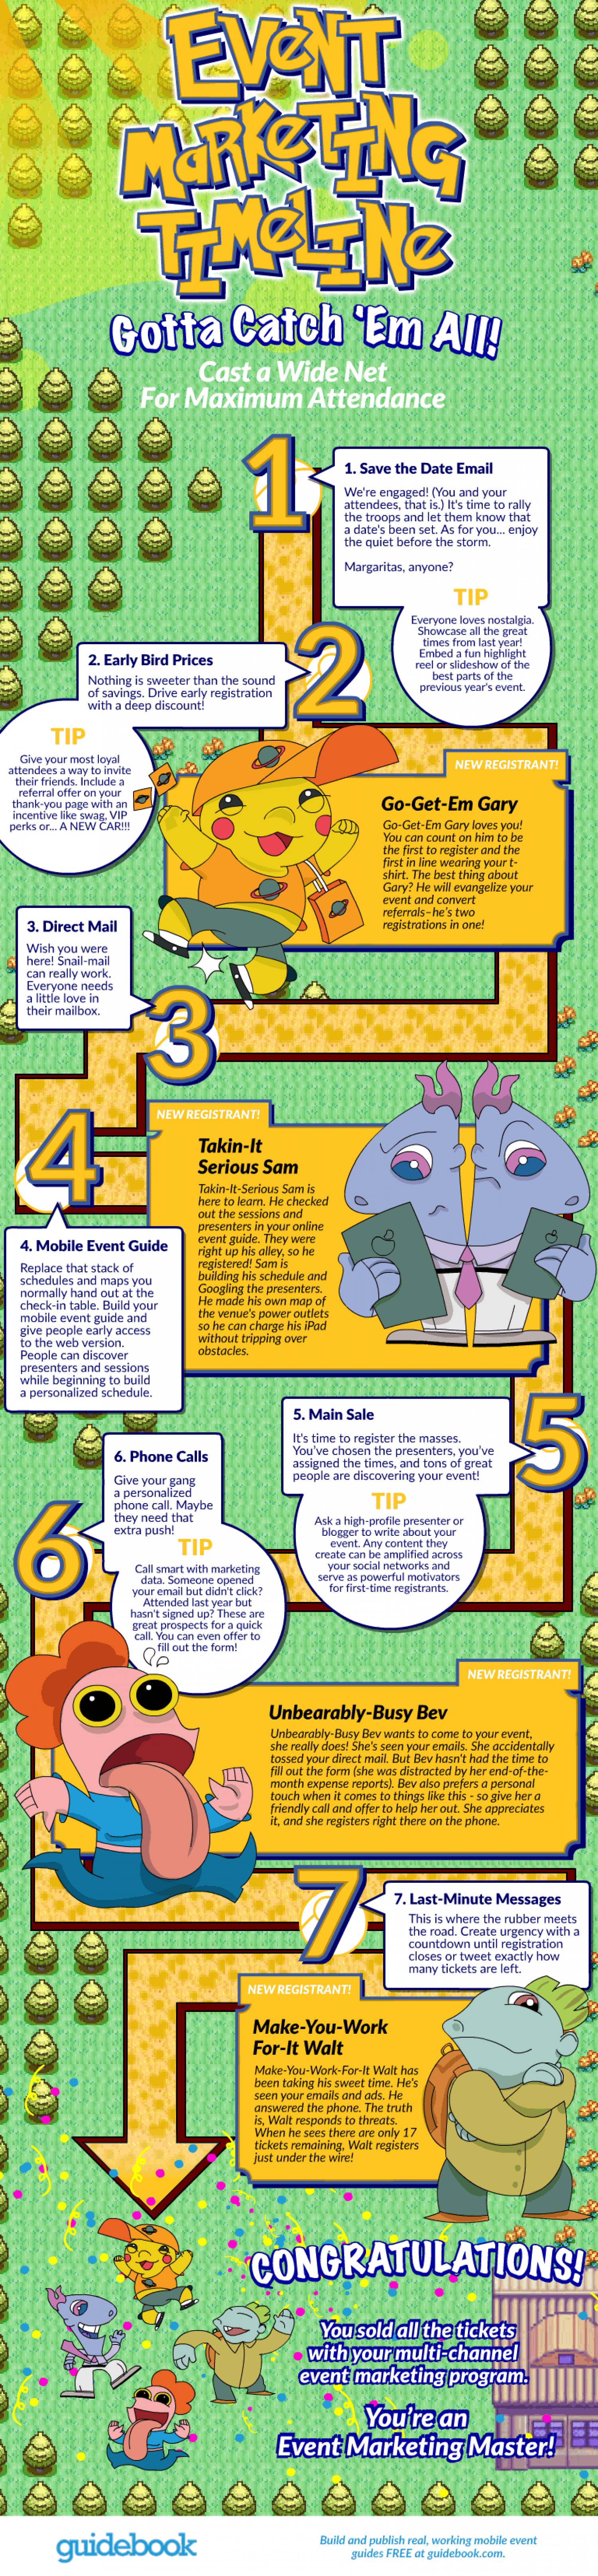 The Event Marketing Timeline Infographic